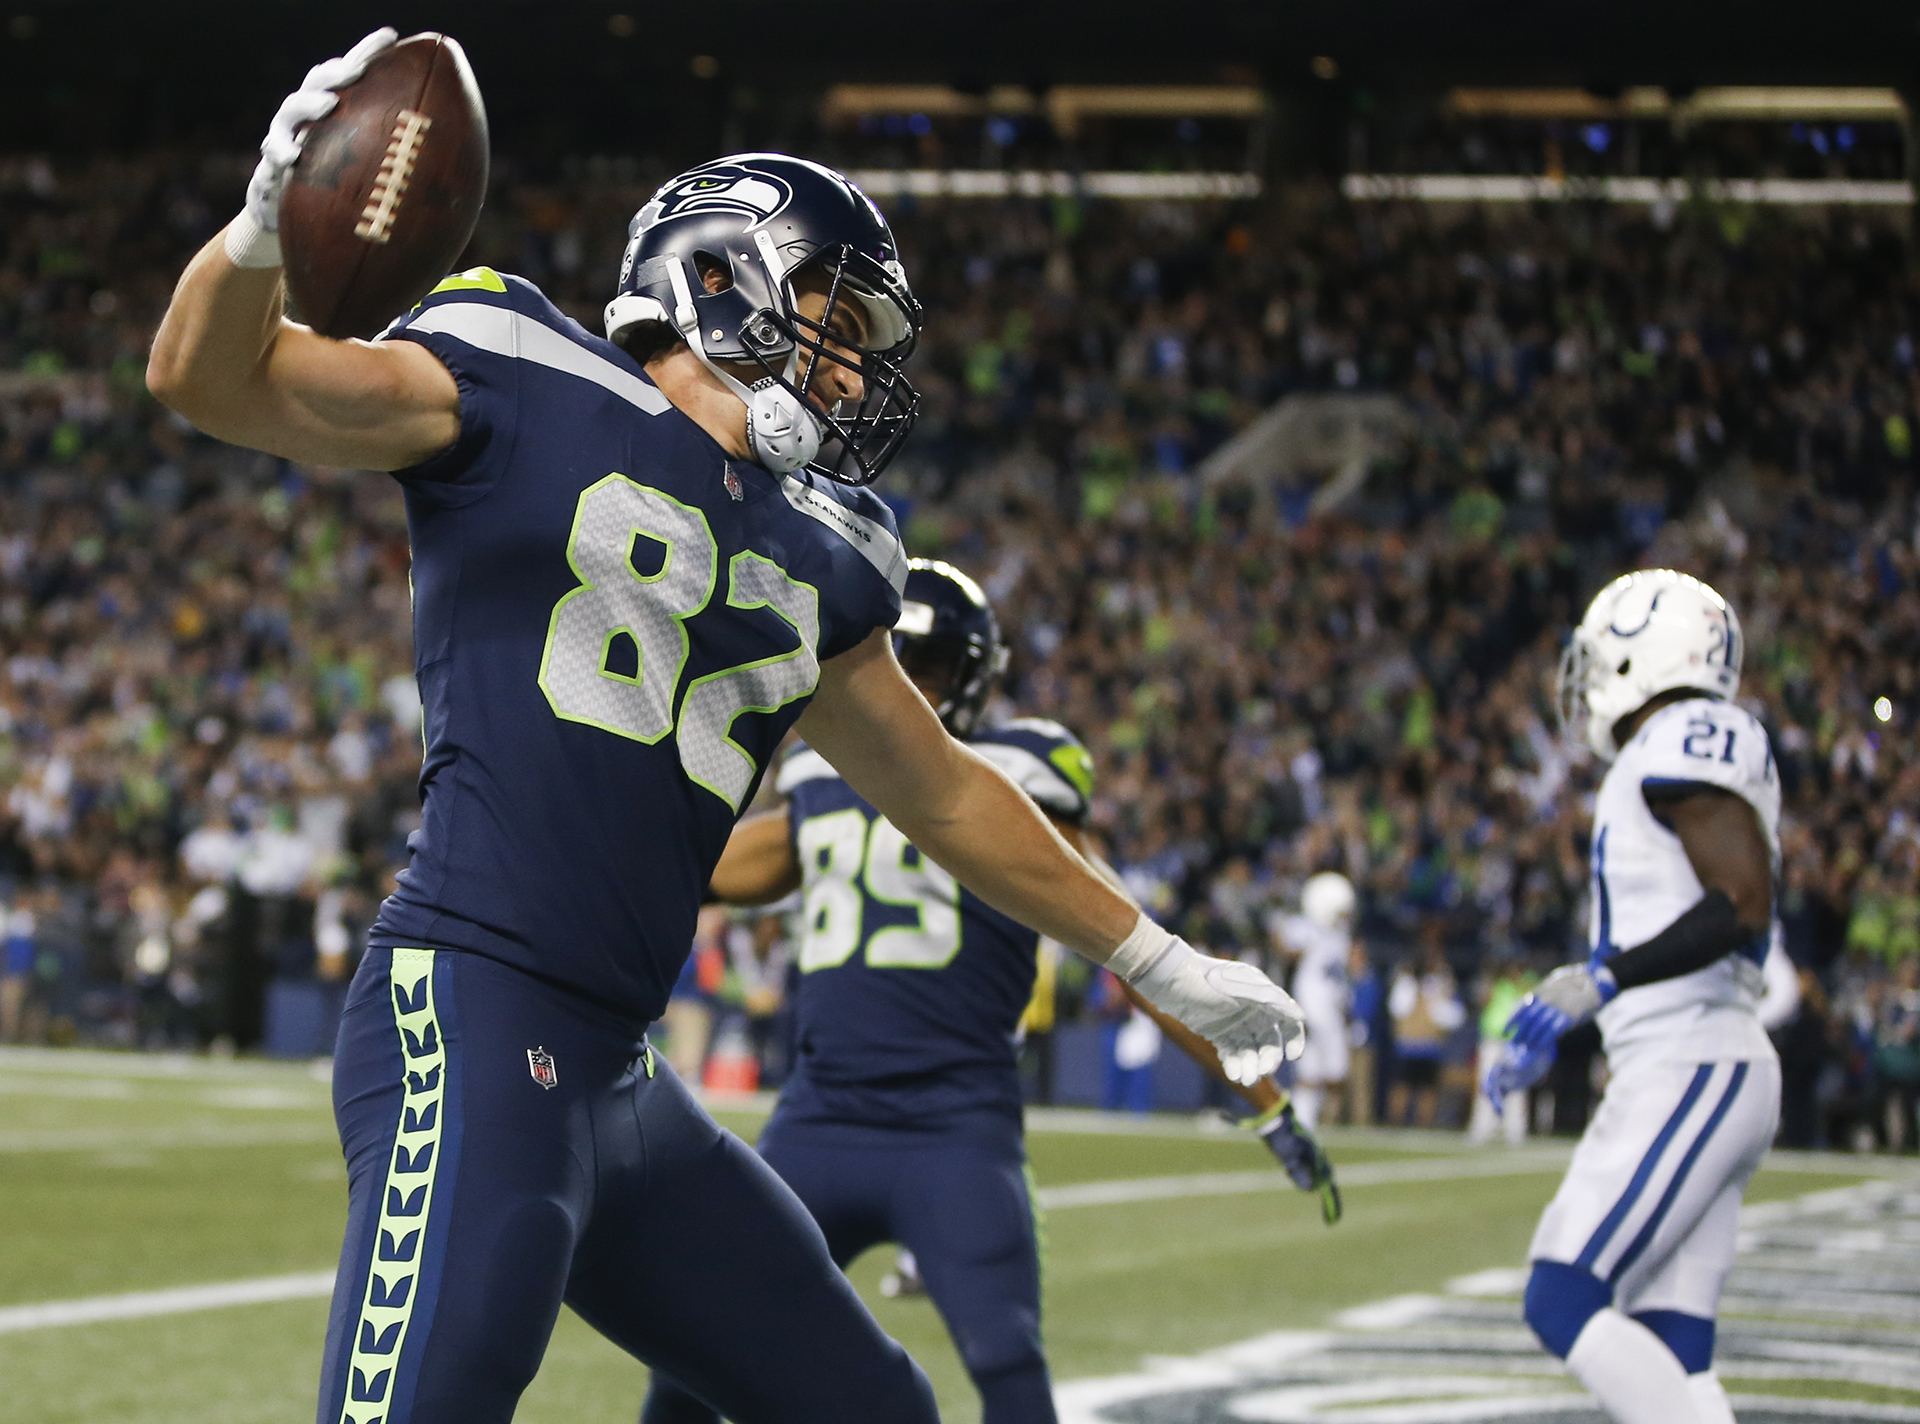 Kareem Abdul-Jabbar spoke with Seahawks prior to game vs. Rams